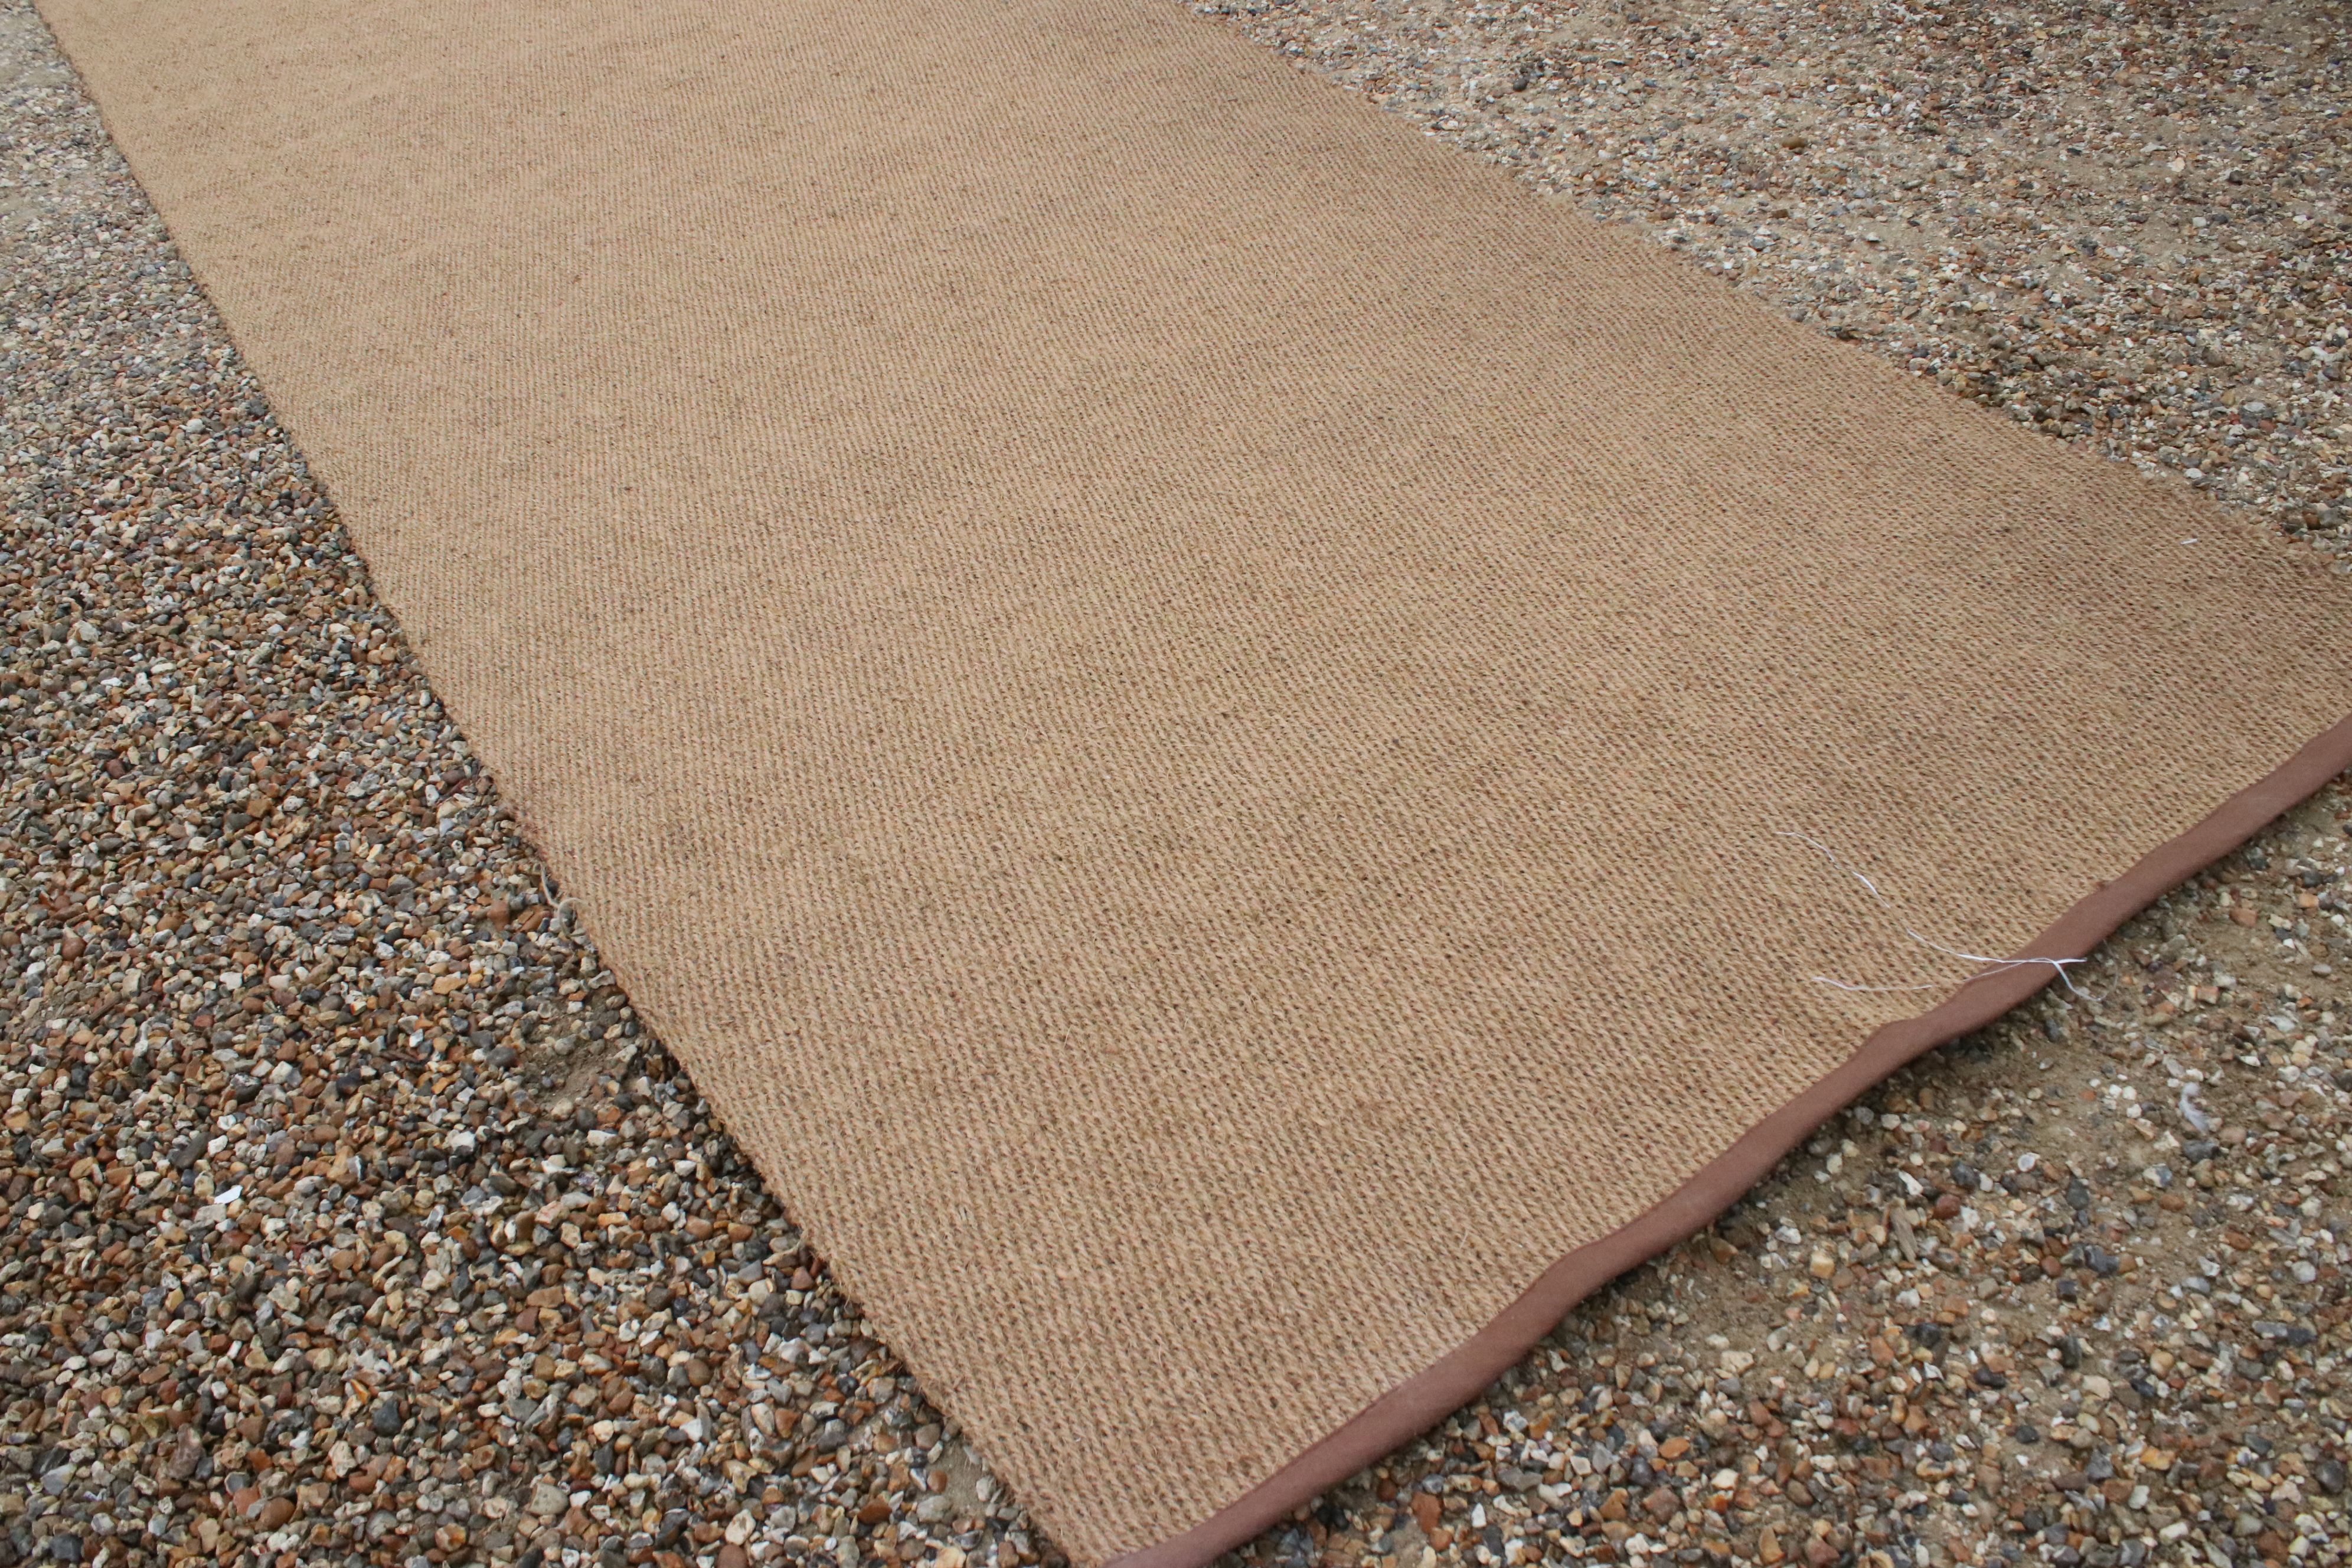 Large coconut mat runner, approx. 20' x 6' (unused) - Image 2 of 3